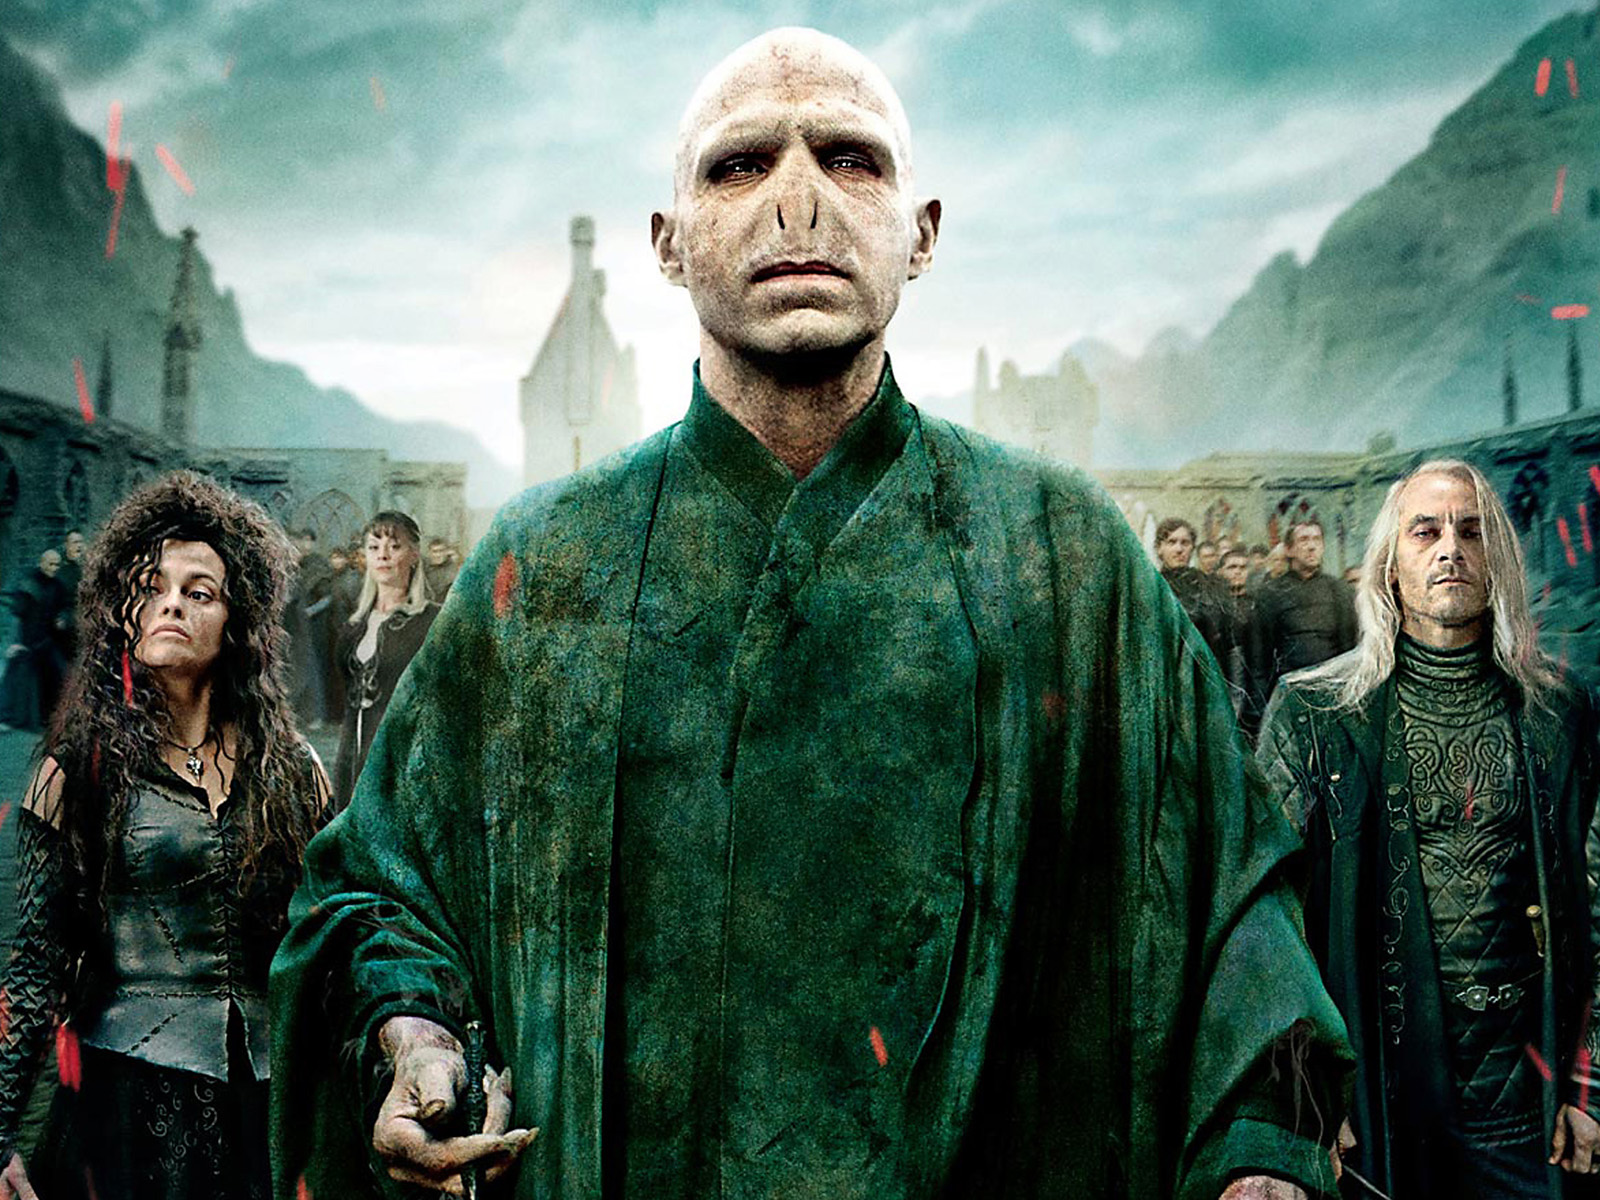 Harry Potter 7 The Deathly Hallows Part 2 Widescreen